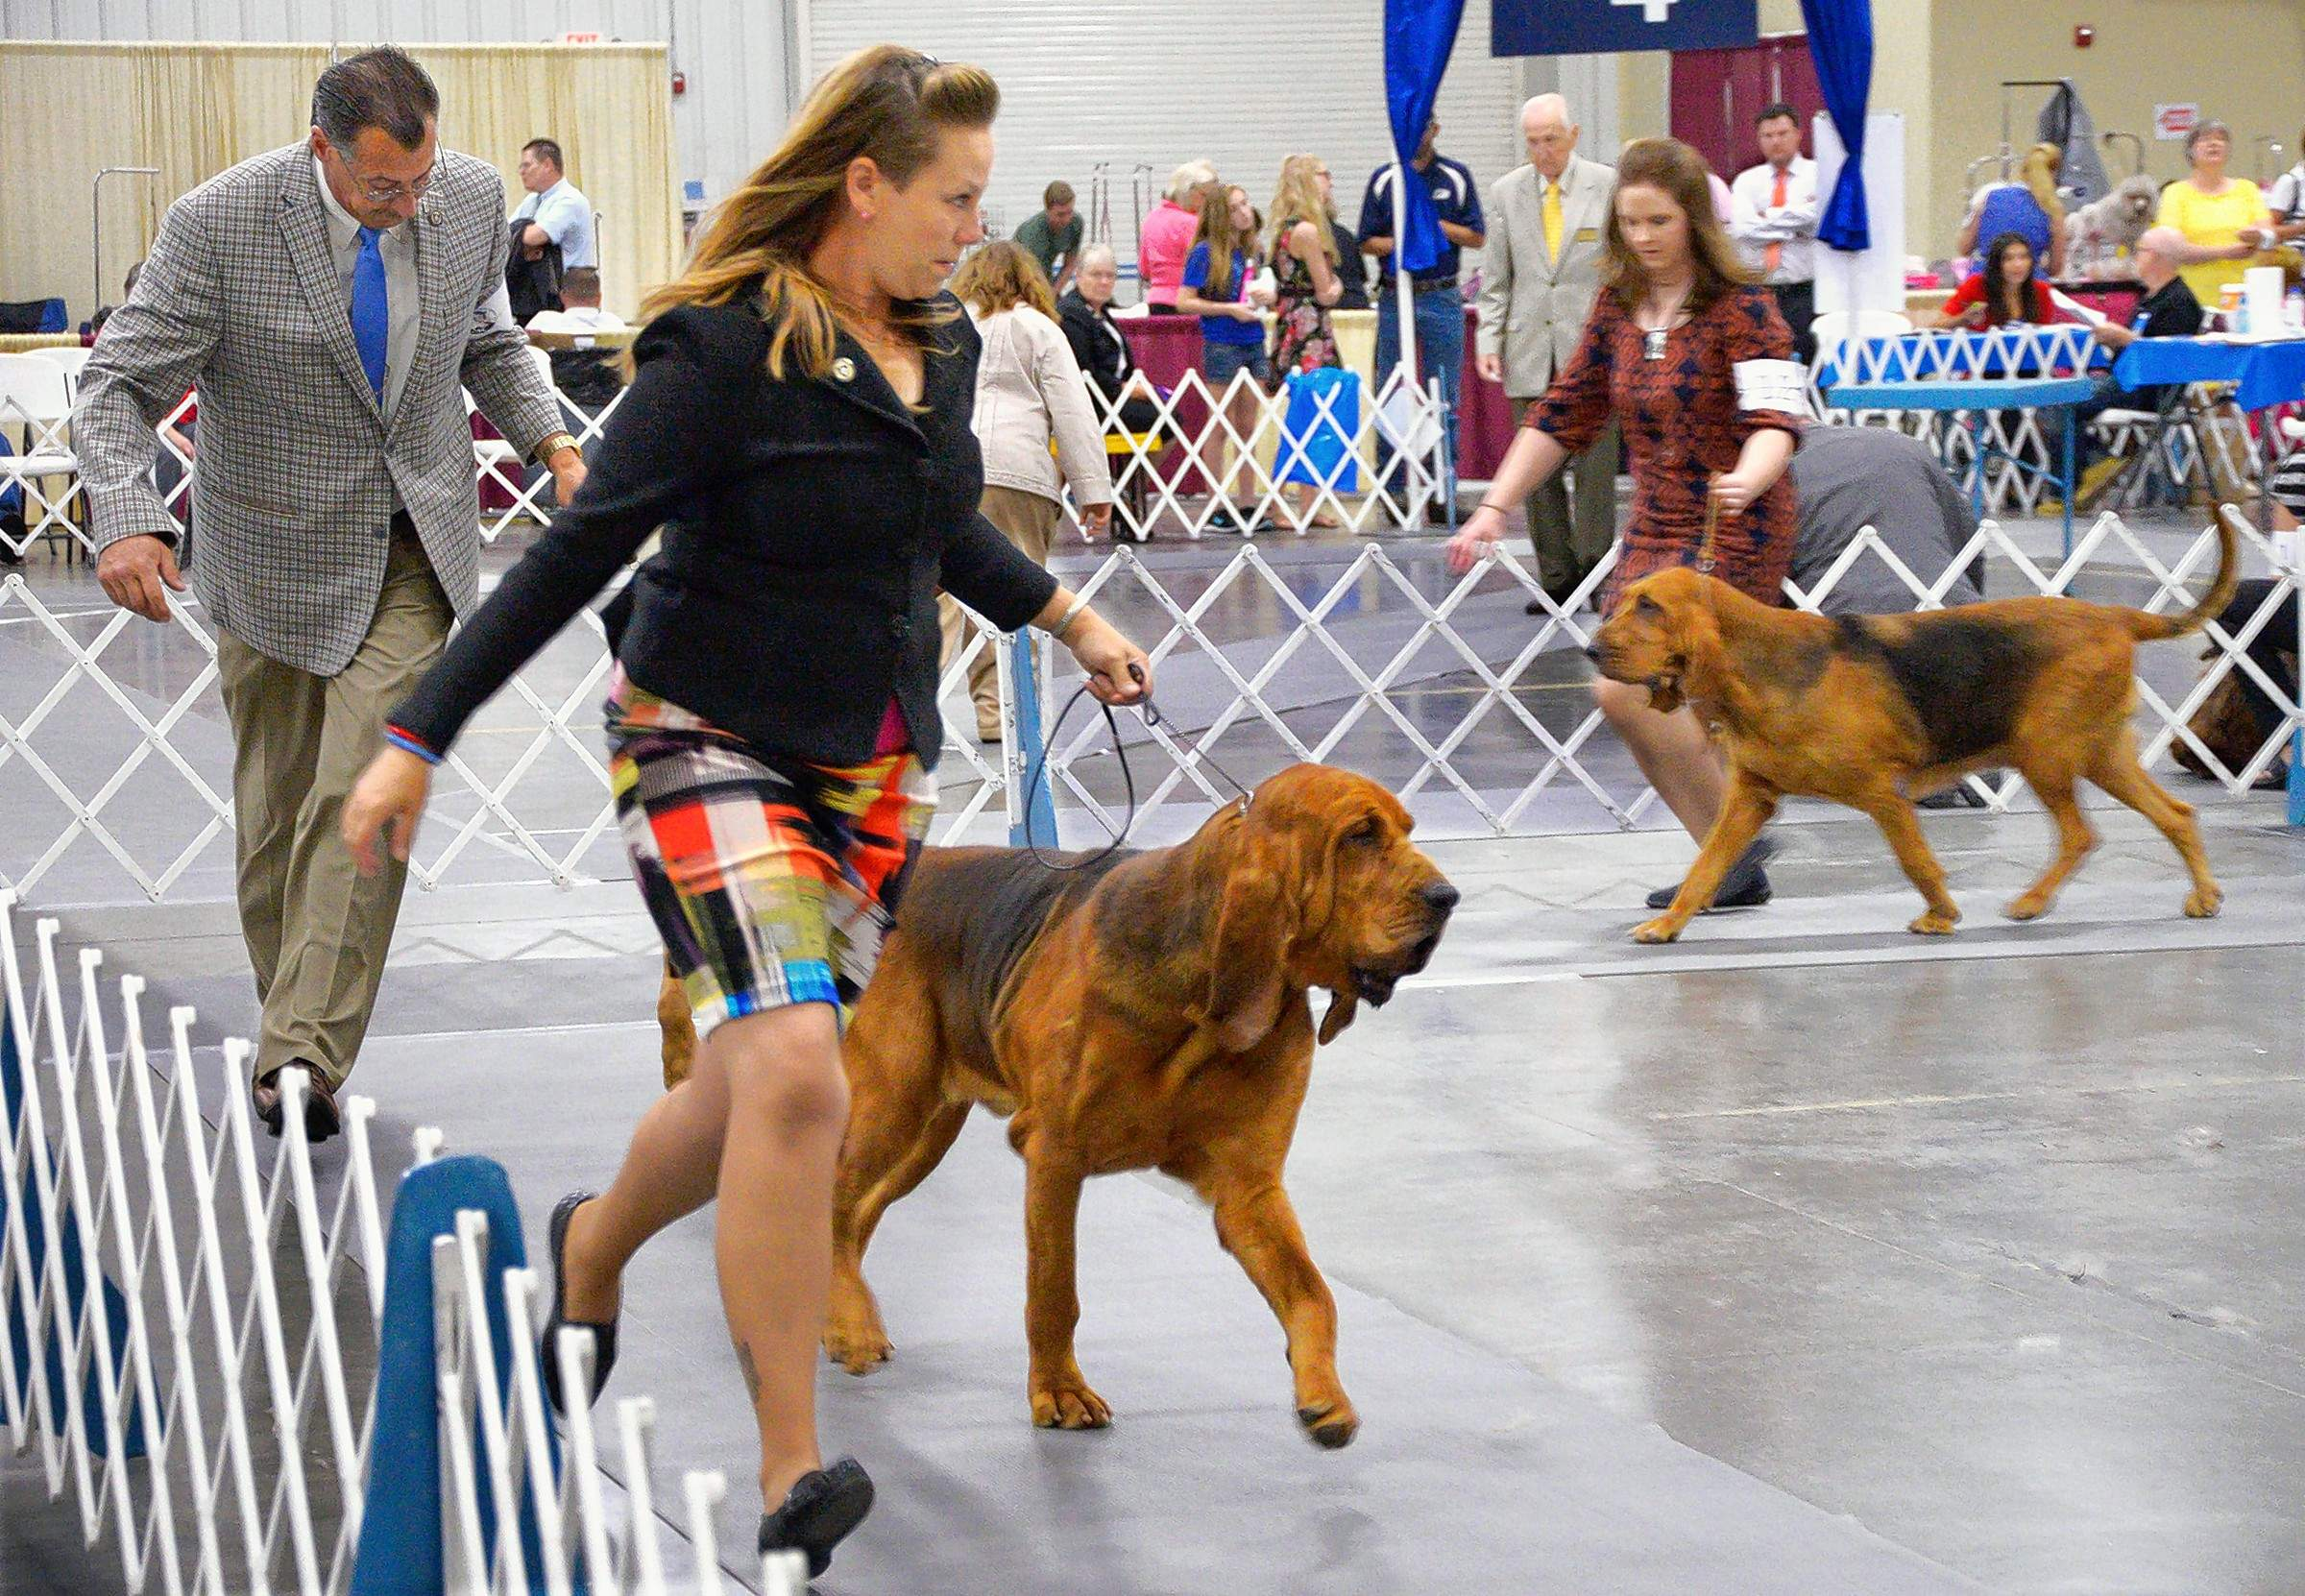 Trainer Danielle Frykman of Beach Park, Illinois, runs a bloodhound named Santana around a show ring. Santana lives in North Carolina.